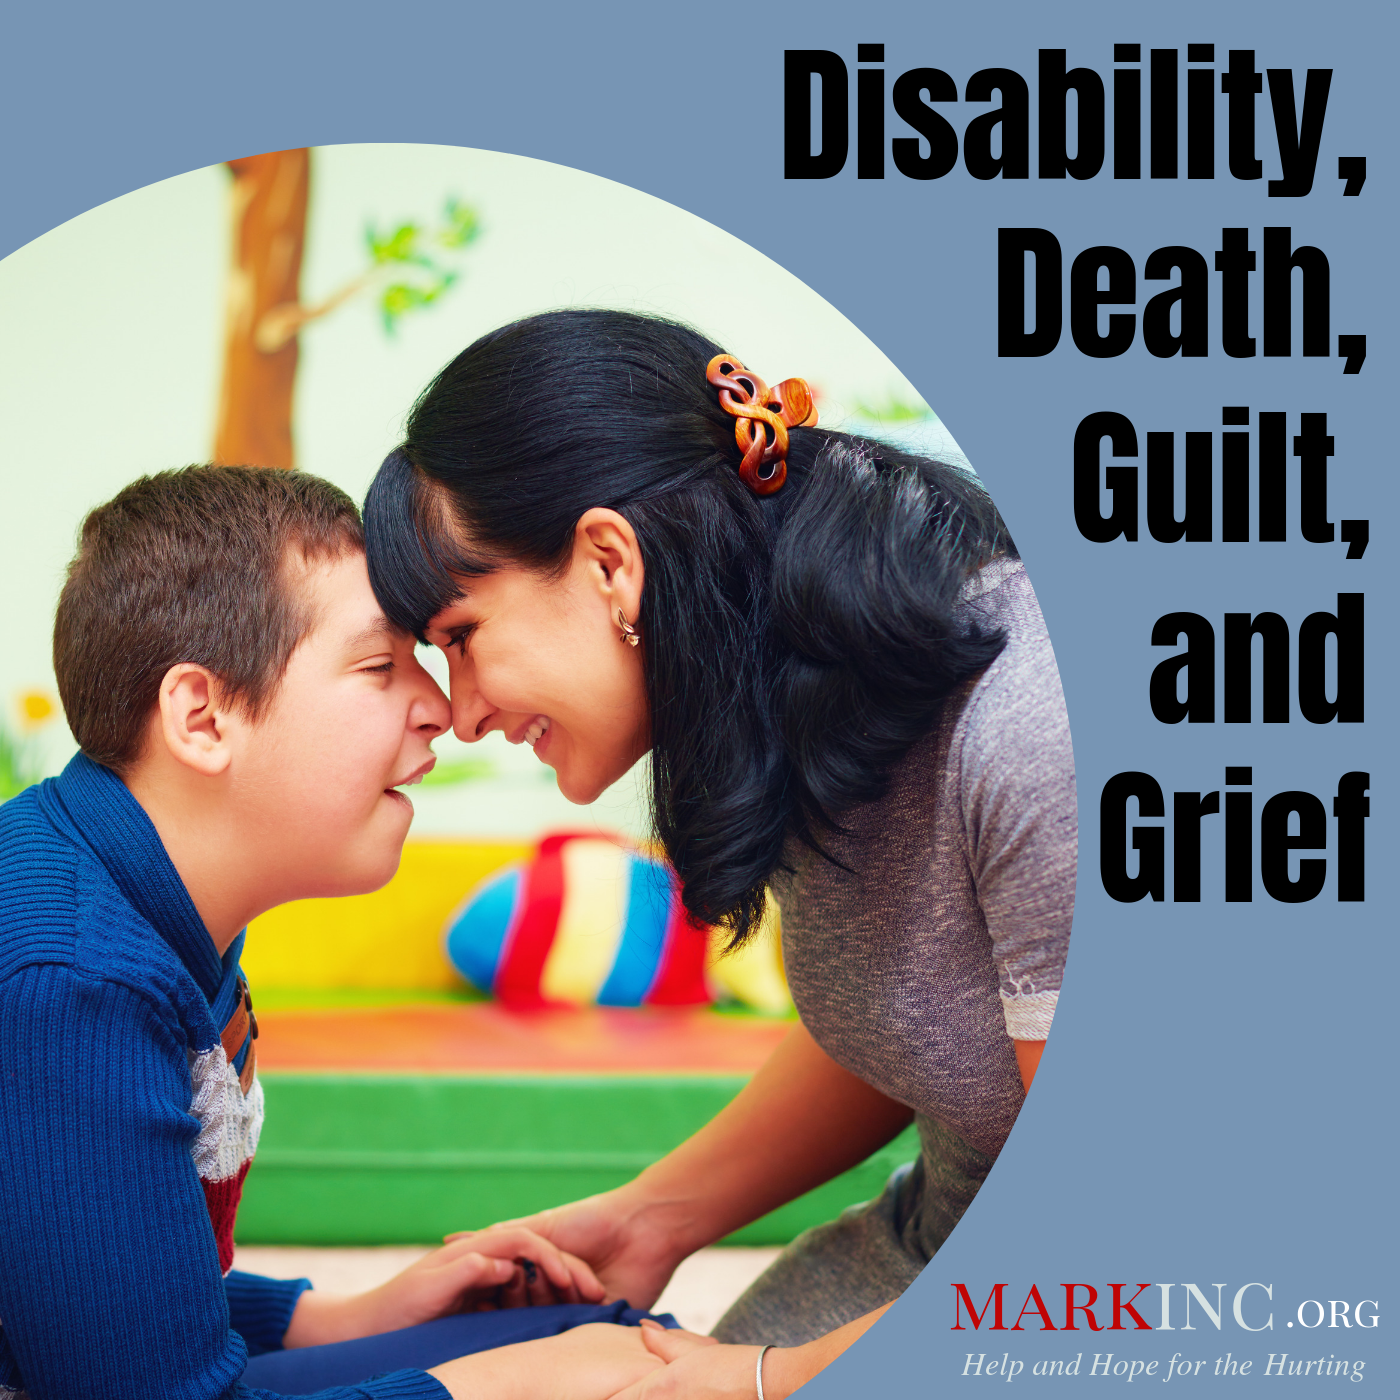 H&H Disability, Death, Guilt, and Grief.png